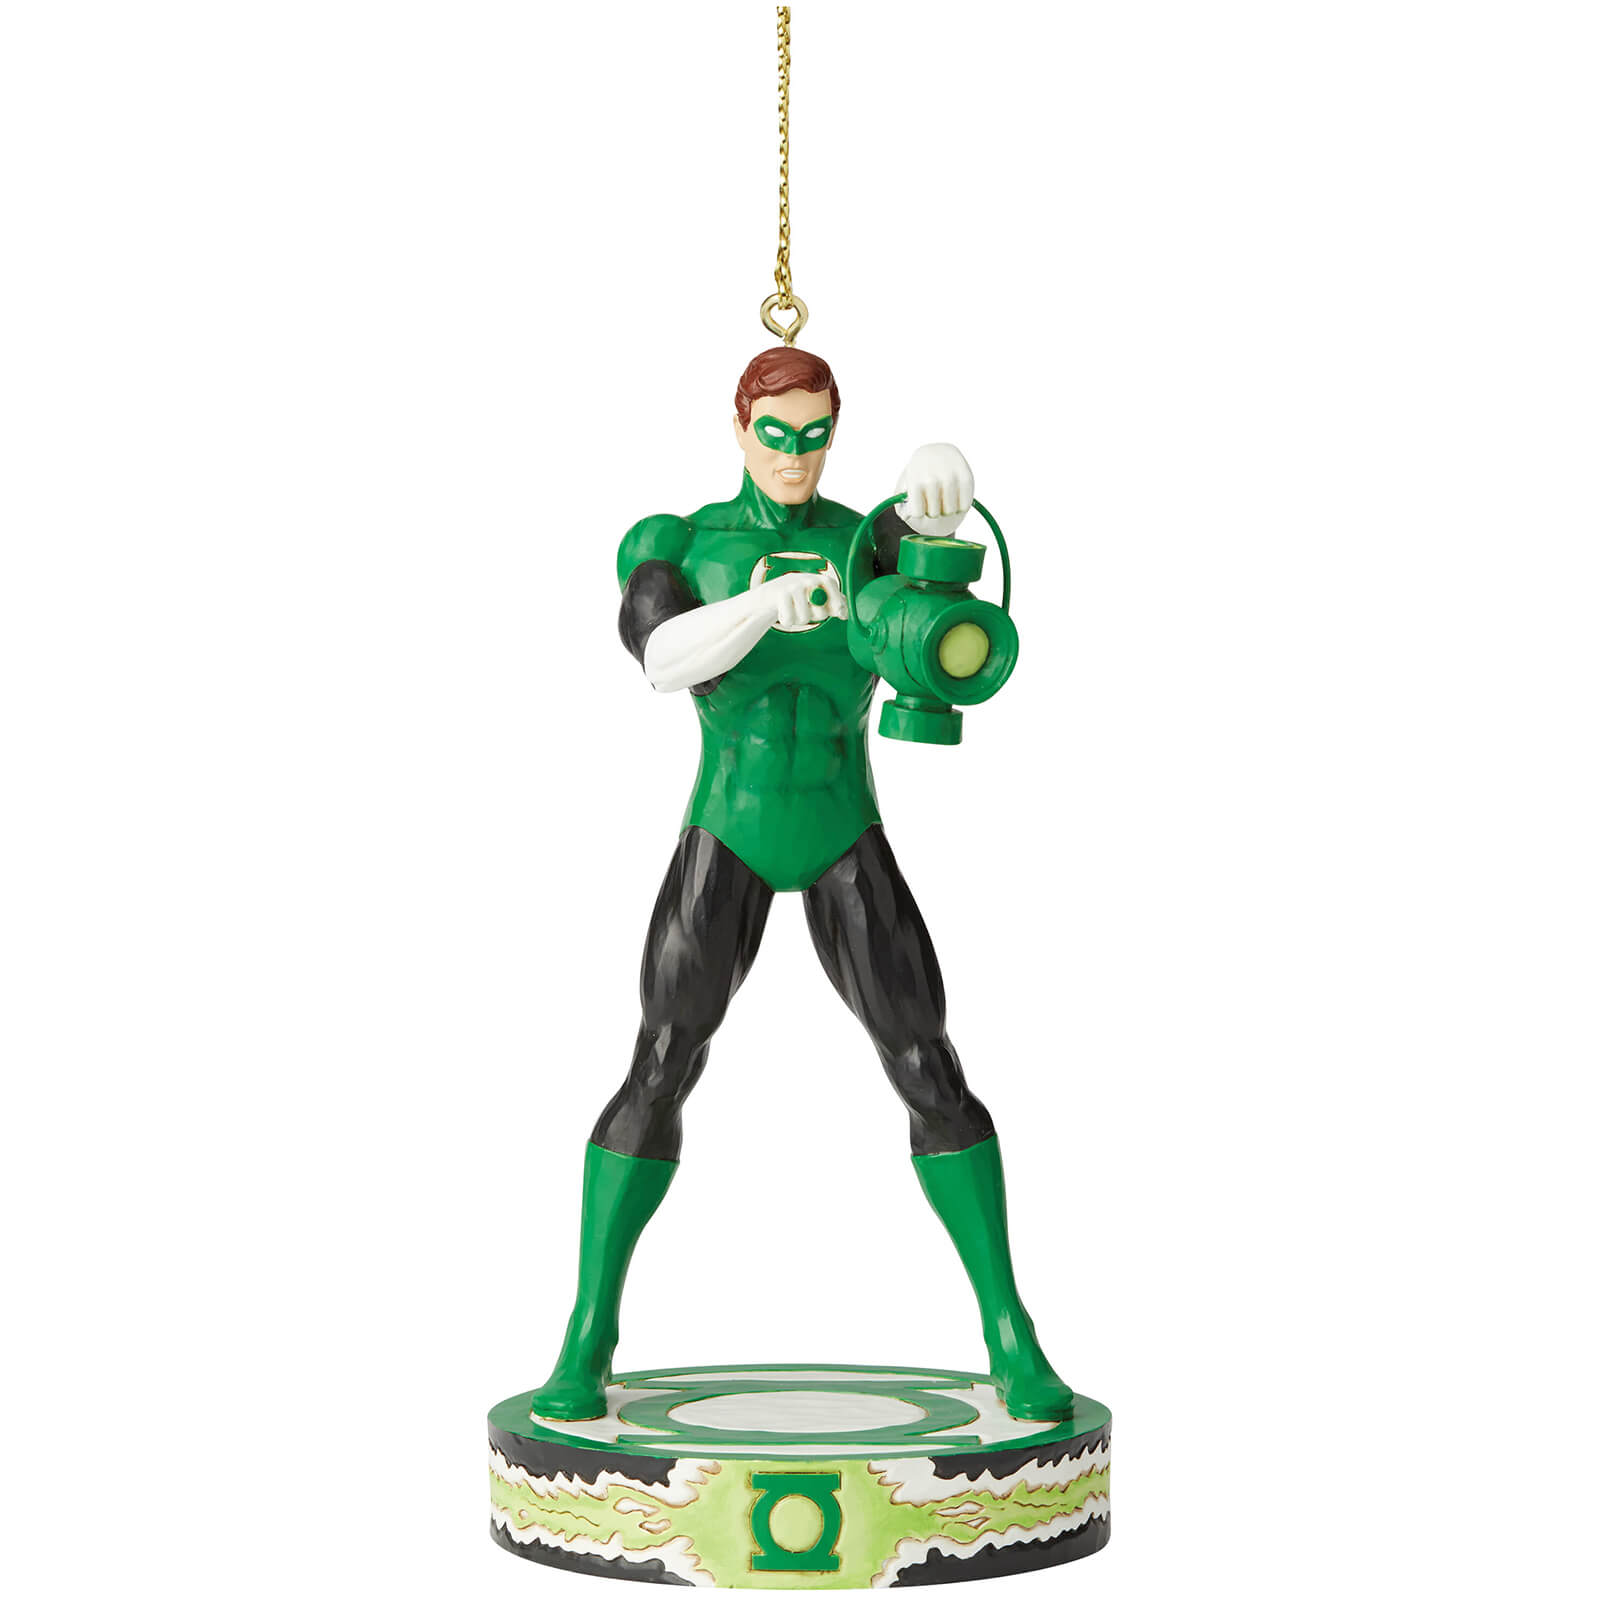 Image of DC Comics by Jim Shore Green Lantern Hanging Ornament 11.0cm